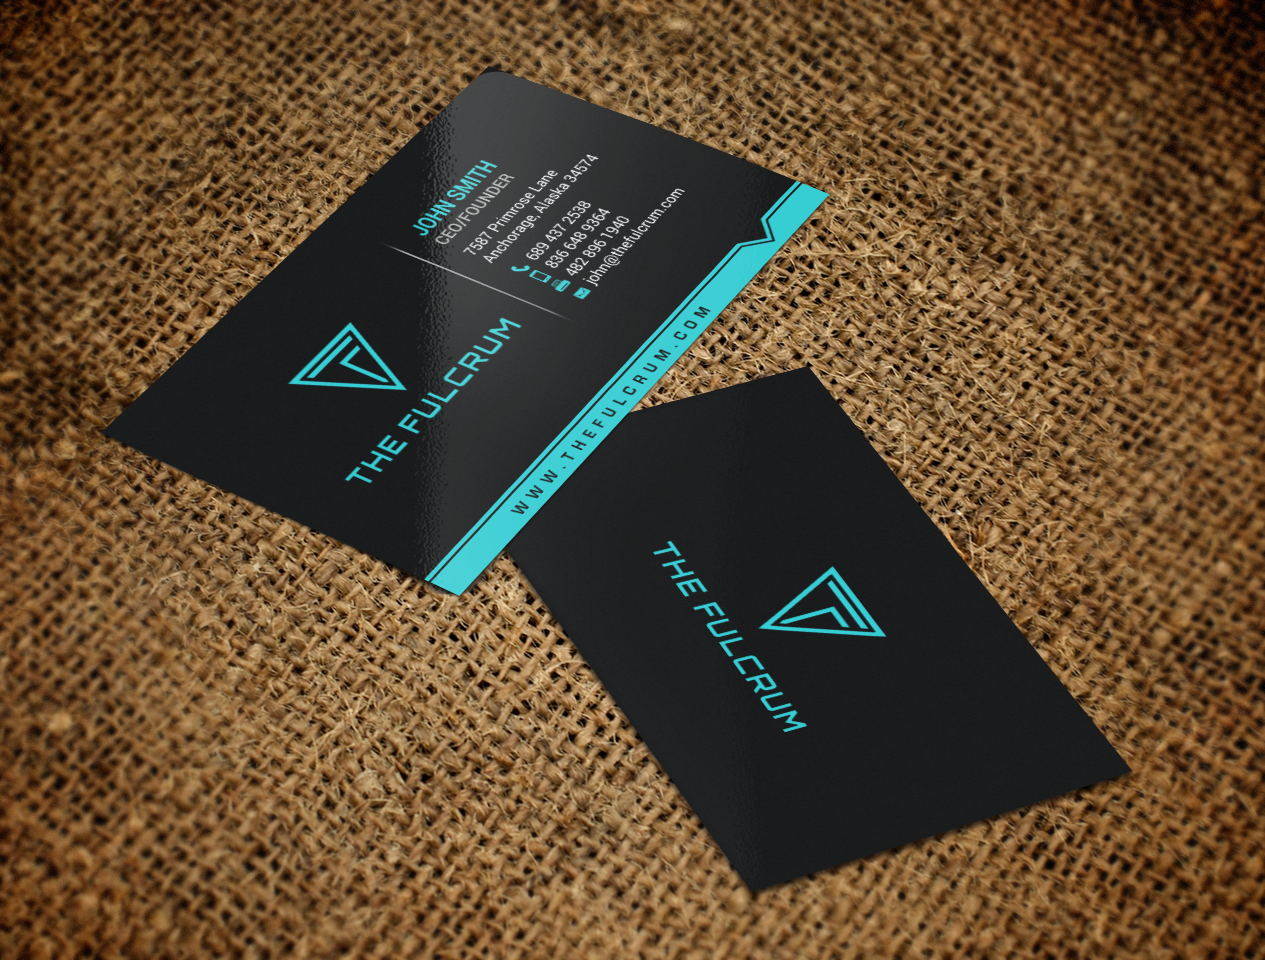 Bold modern festival business card design for infinity music group business card design by chandrayaaneative for infinity music group llc design 17103065 reheart Image collections